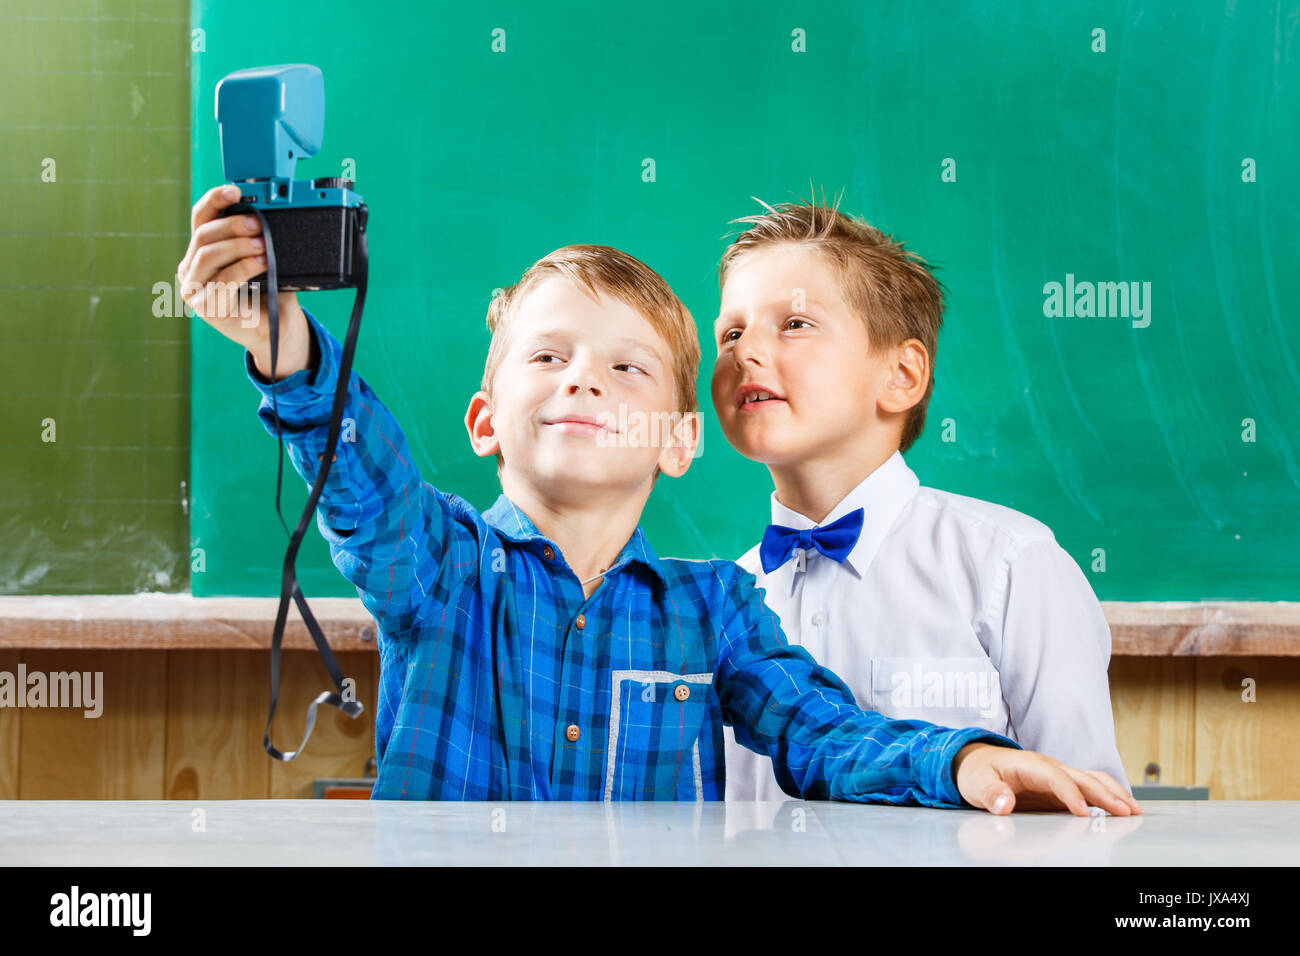 Two schoolmates make selfie at blackboard in school. Back to school concept background - Stock Image